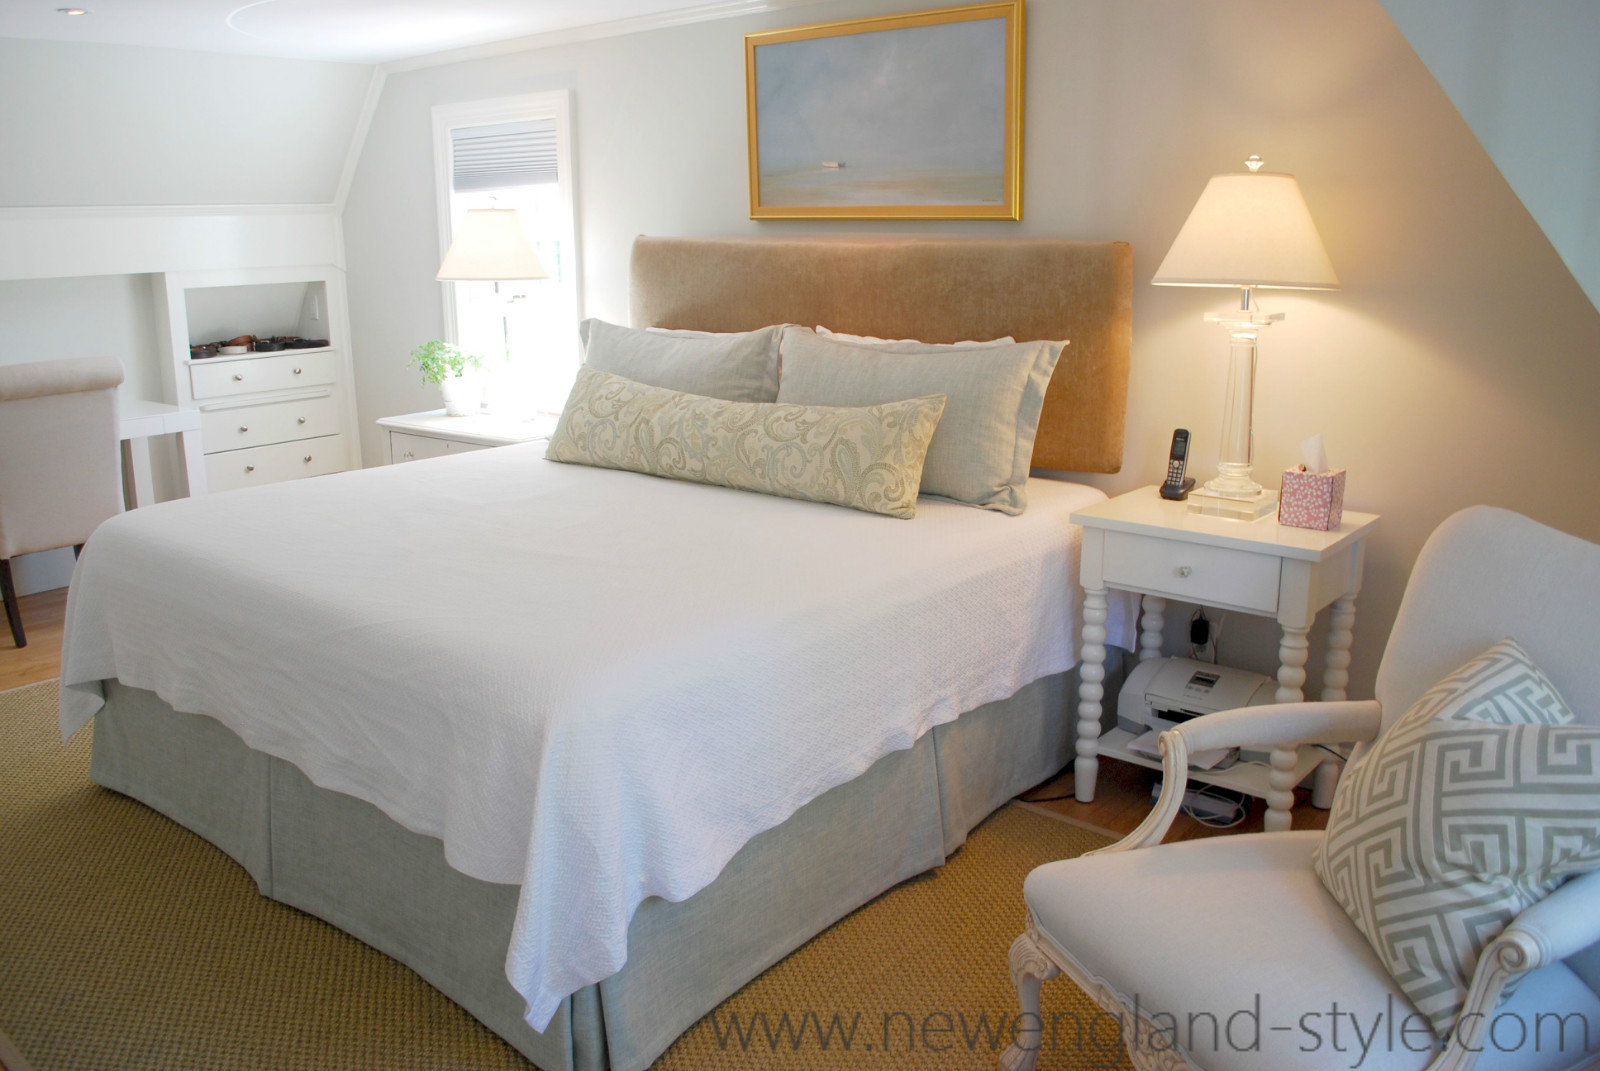 New England Style: Marblehead Coast Bedroom Dressed in Linen